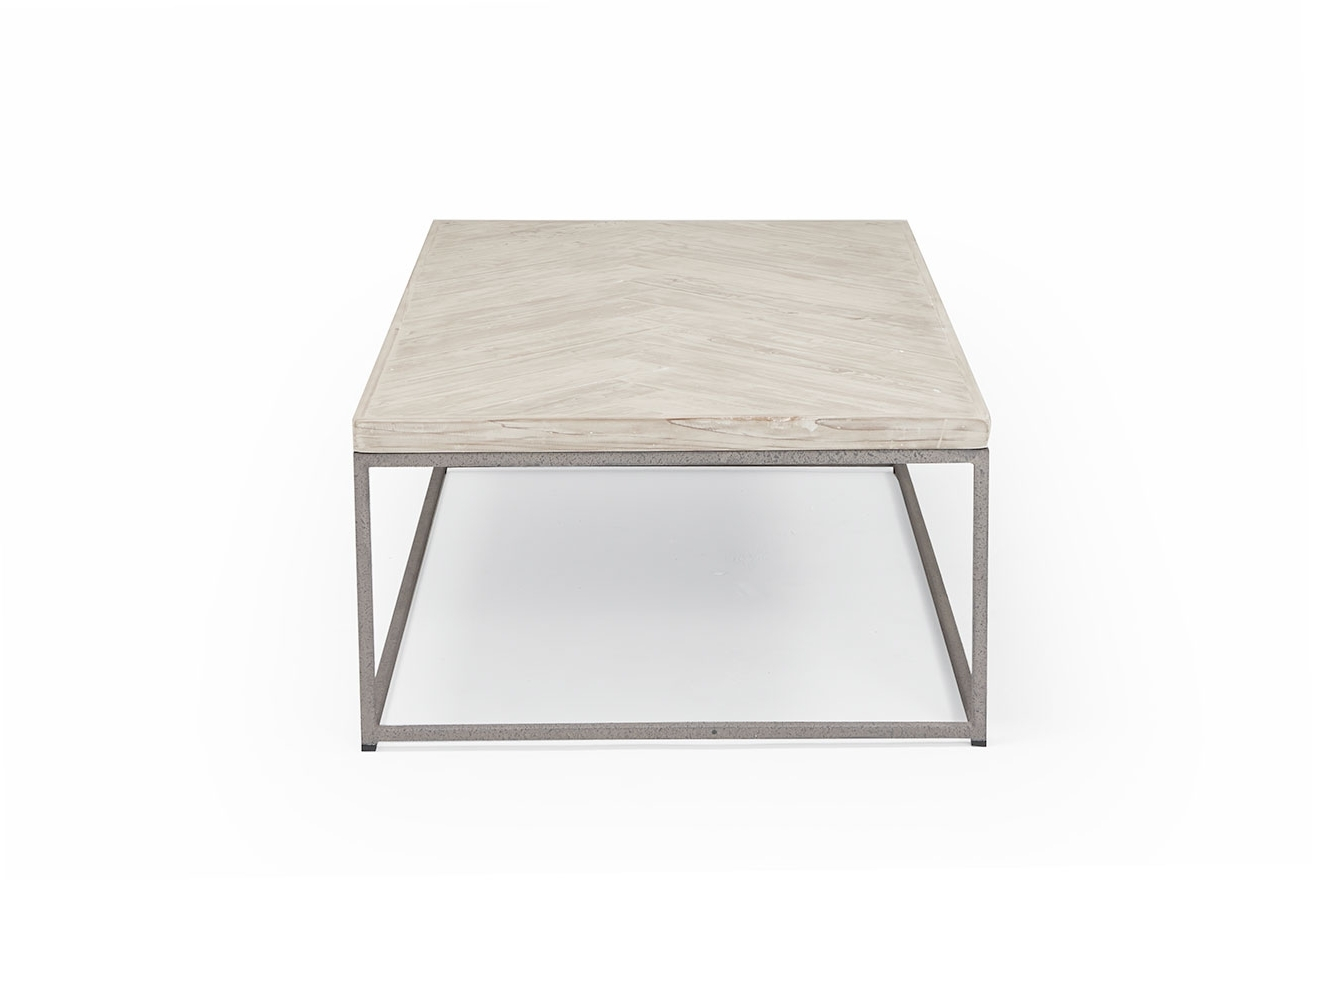 Loaf Intended For 2018 Parker Oval Marble Coffee Tables (View 9 of 20)